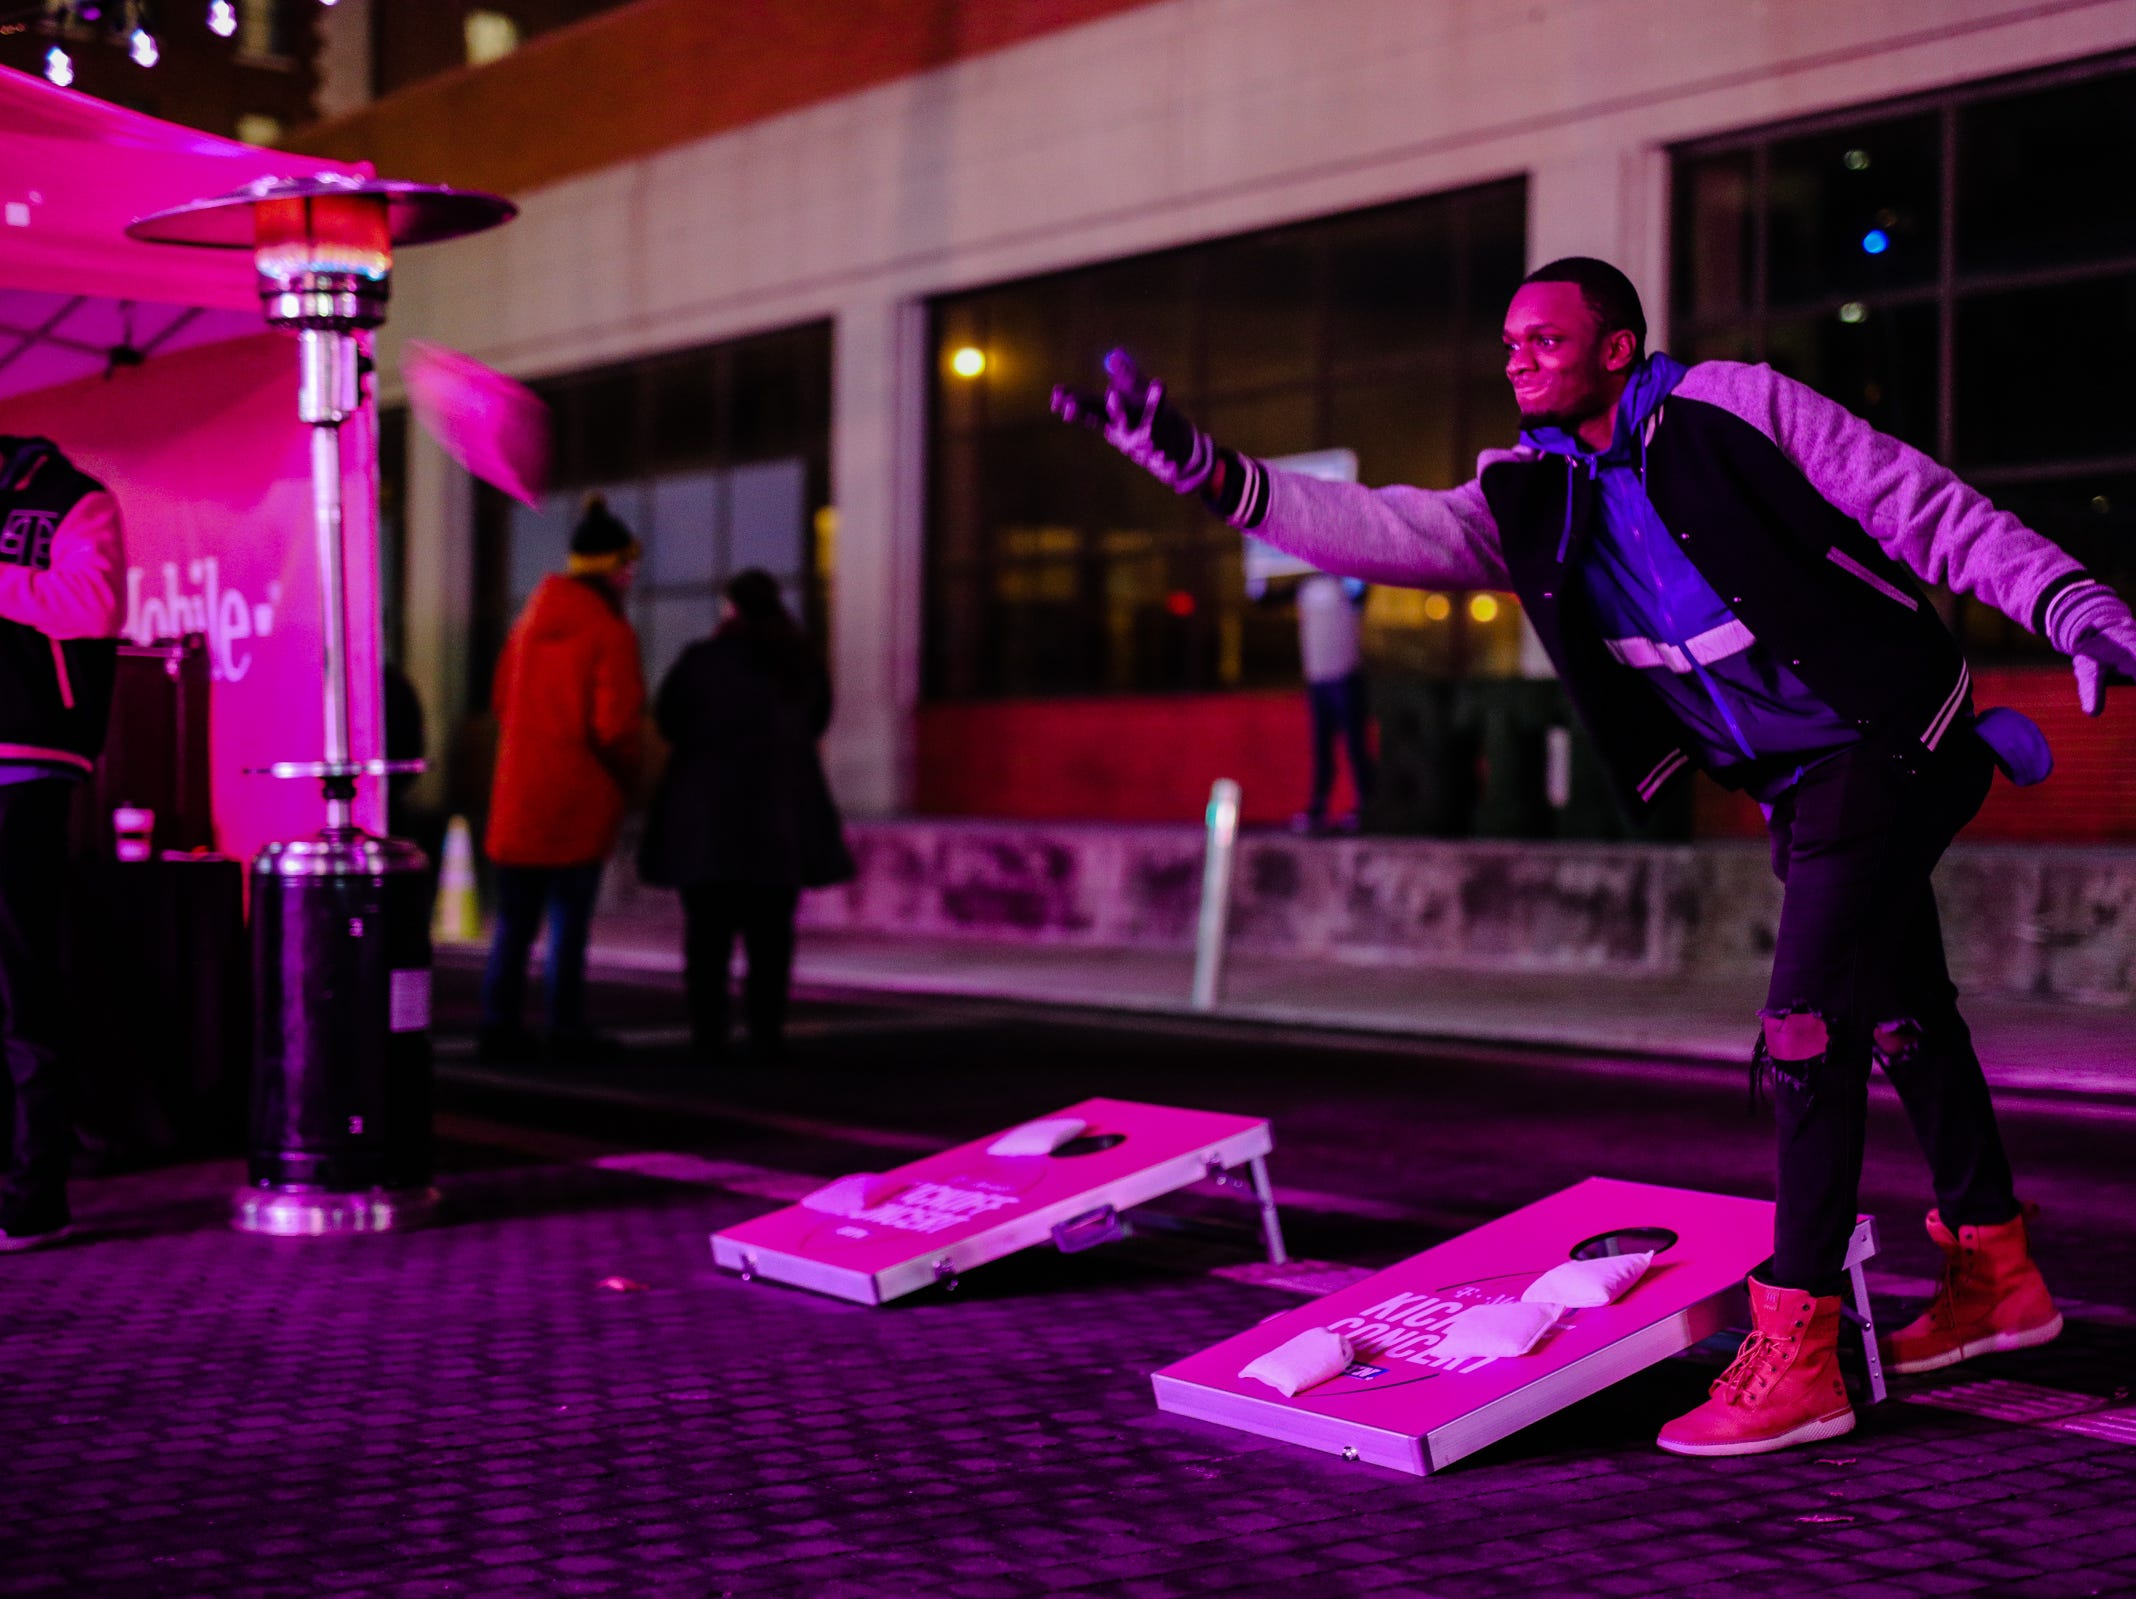 Cornhole is played under a pink glow during the Georgia Street Preshow Tailgate on Friday. Josh Hicks/for Indy Star